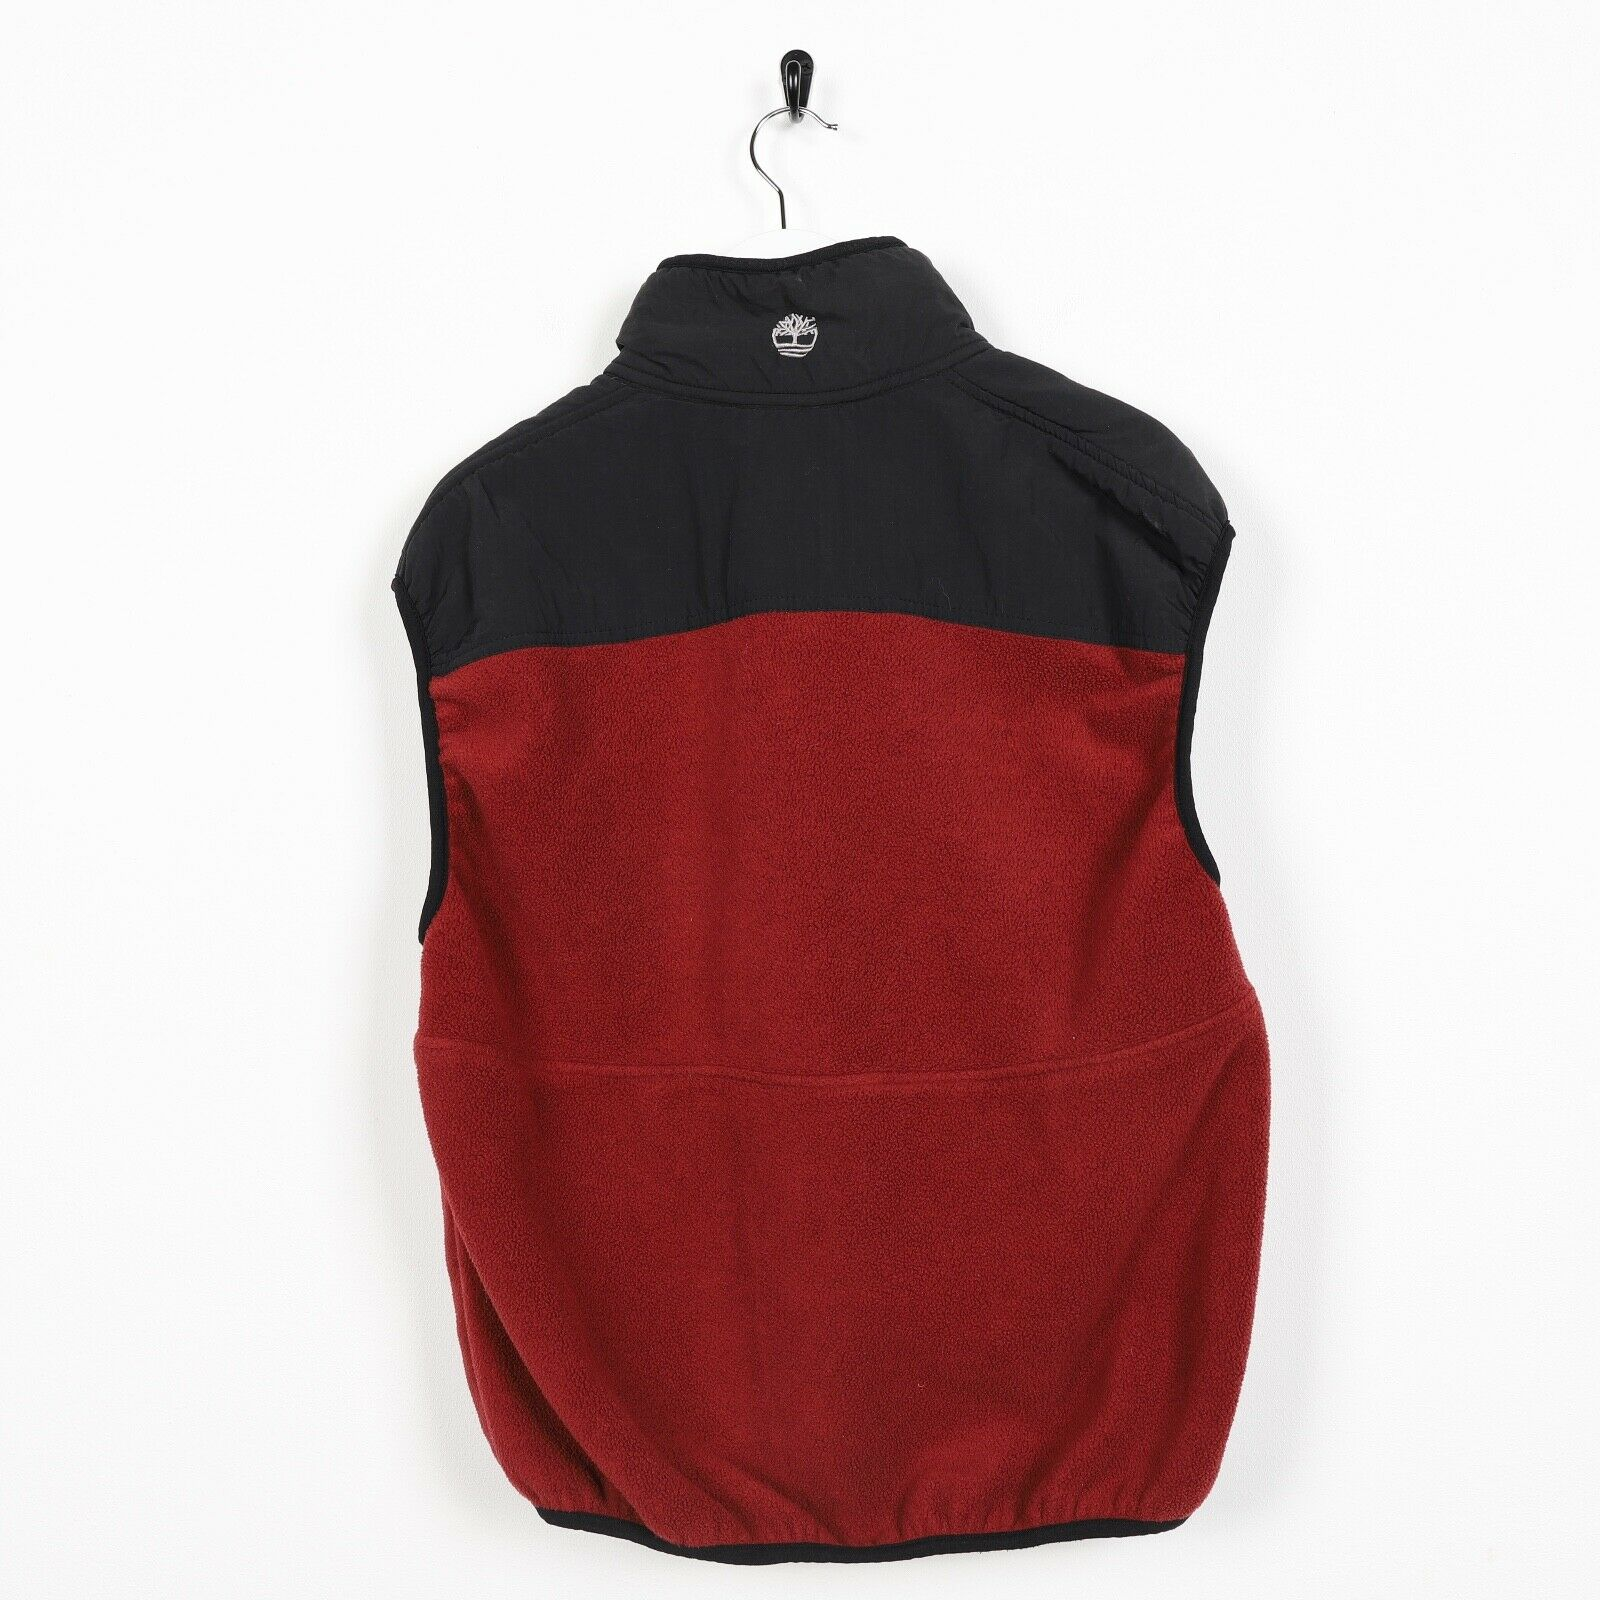 Vintage TIMBERLAND Small Logo Sleeveless Fleece Top Red Black small S